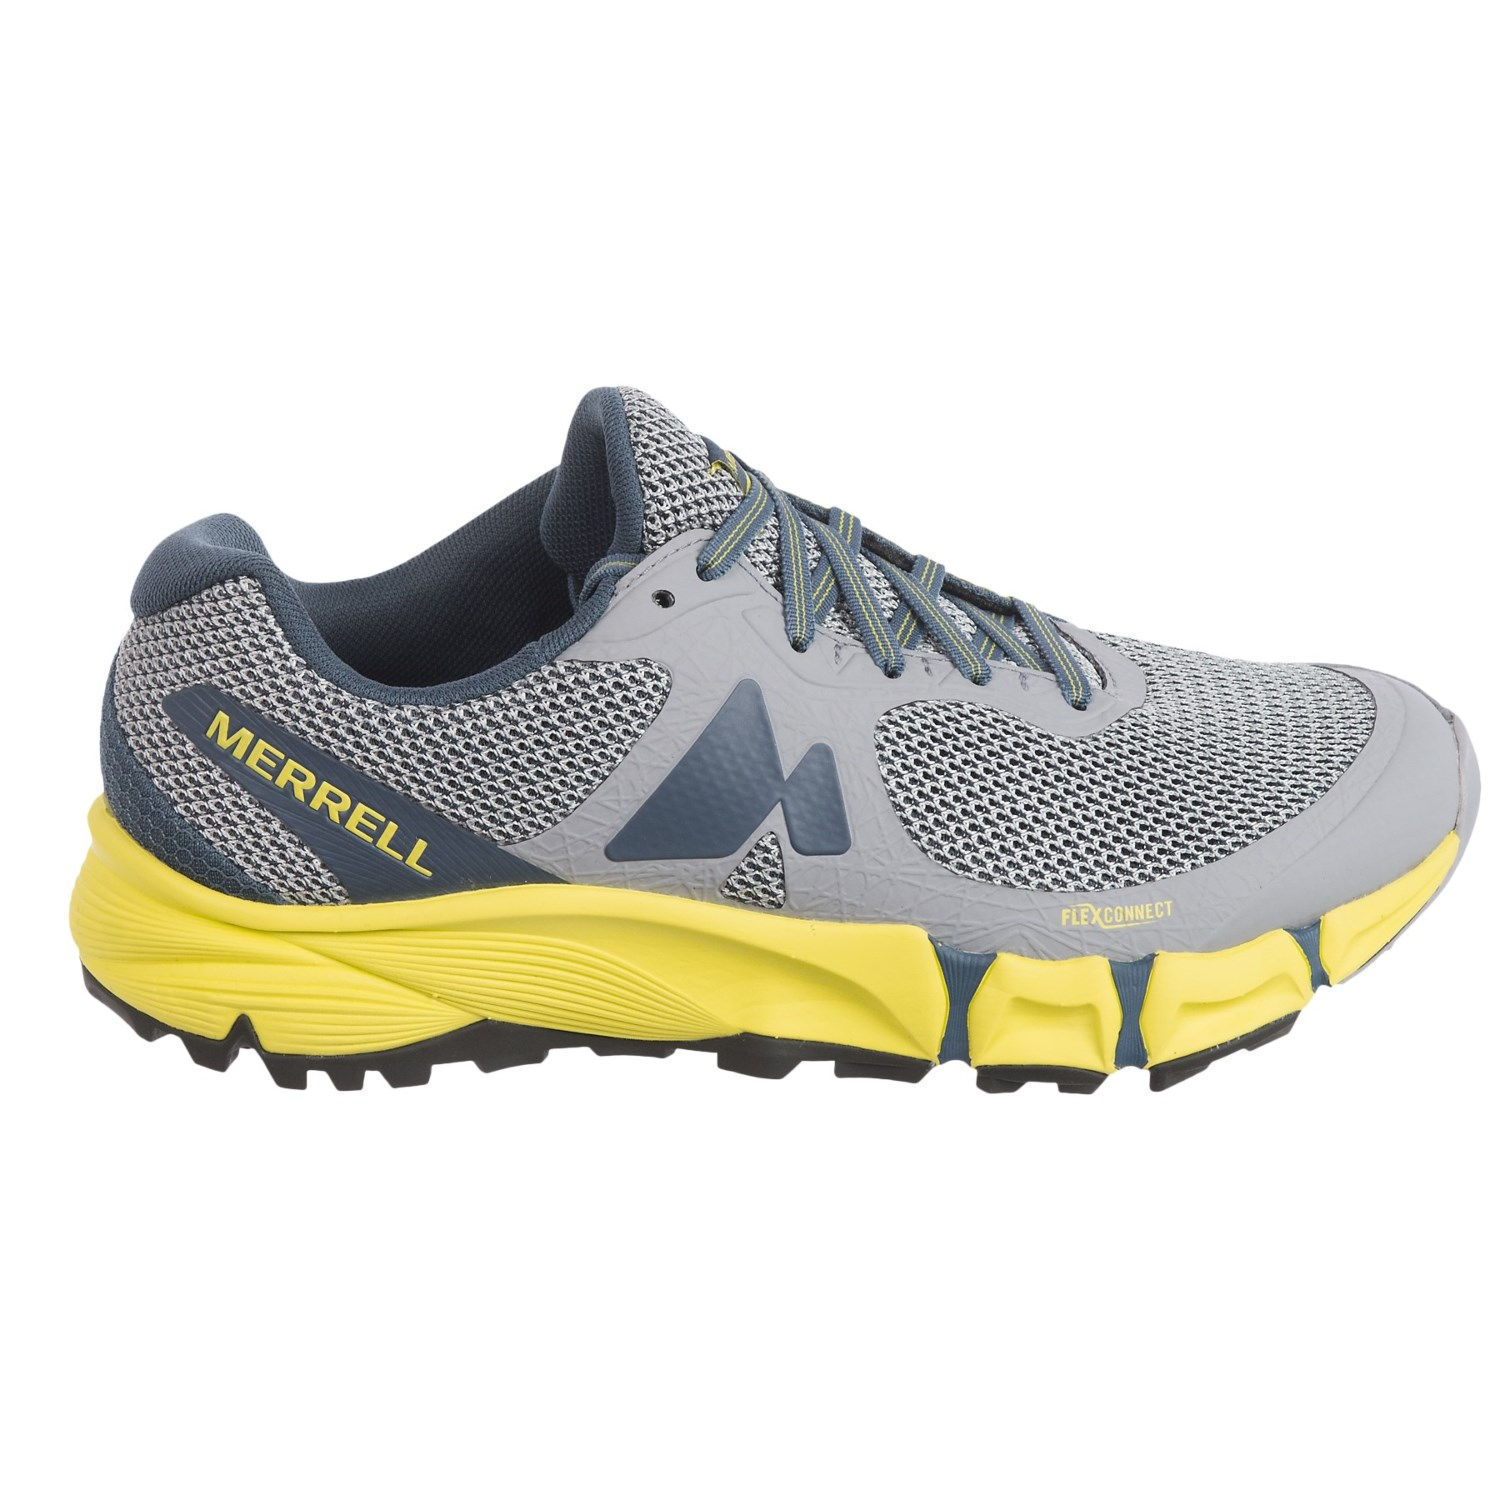 quality design d812f e5317 Merrell Agility Charge Flex Trail Running Shoes For Women